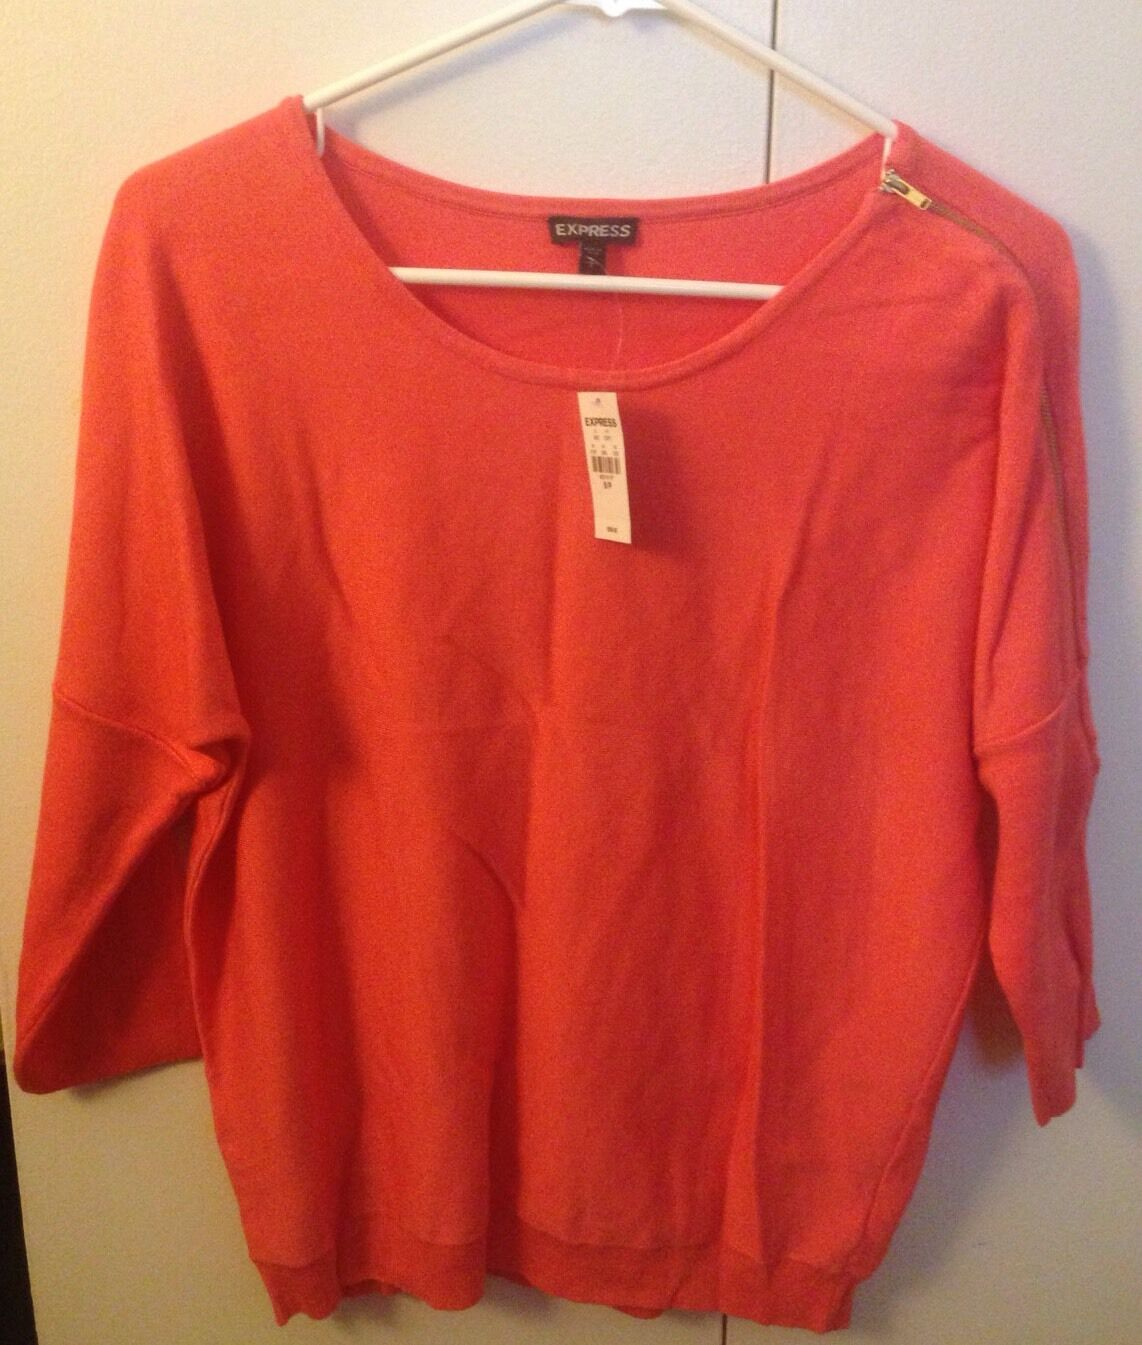 Express Women Fashion Sweater Top Coral 3 4 Sleeves NWT Size Small Sm